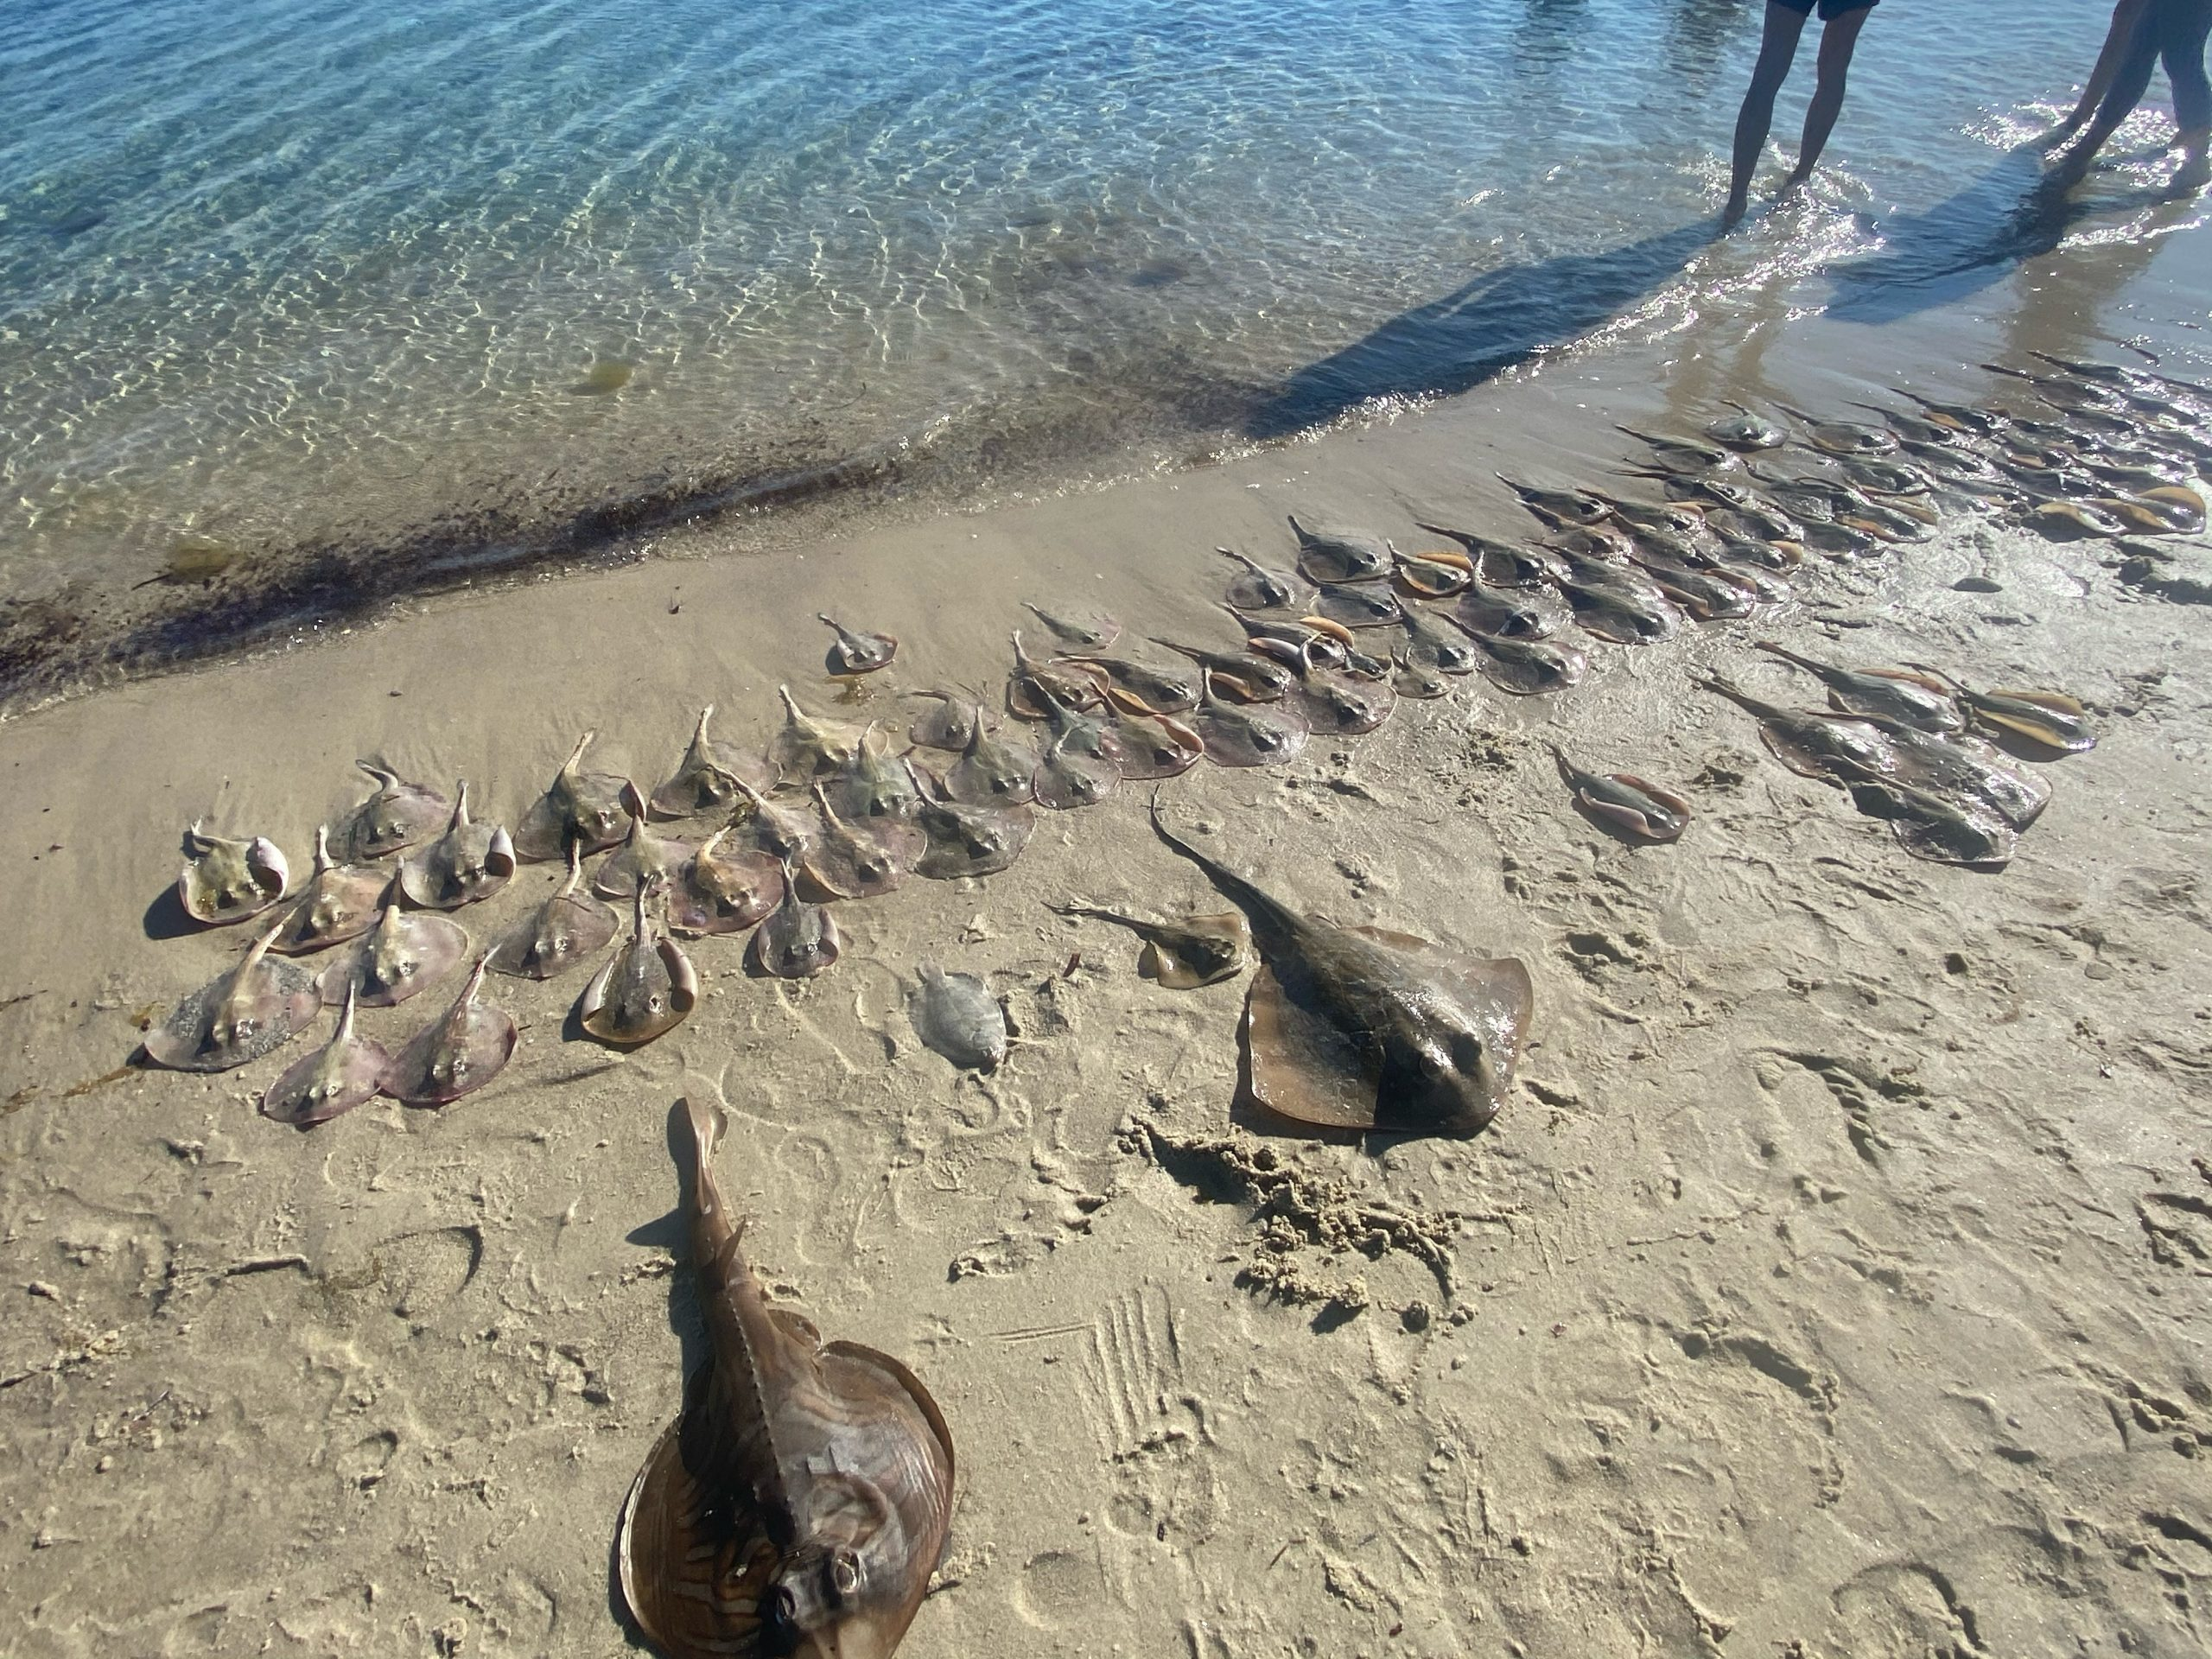 A few of the deceased rays found by Sea Shelter